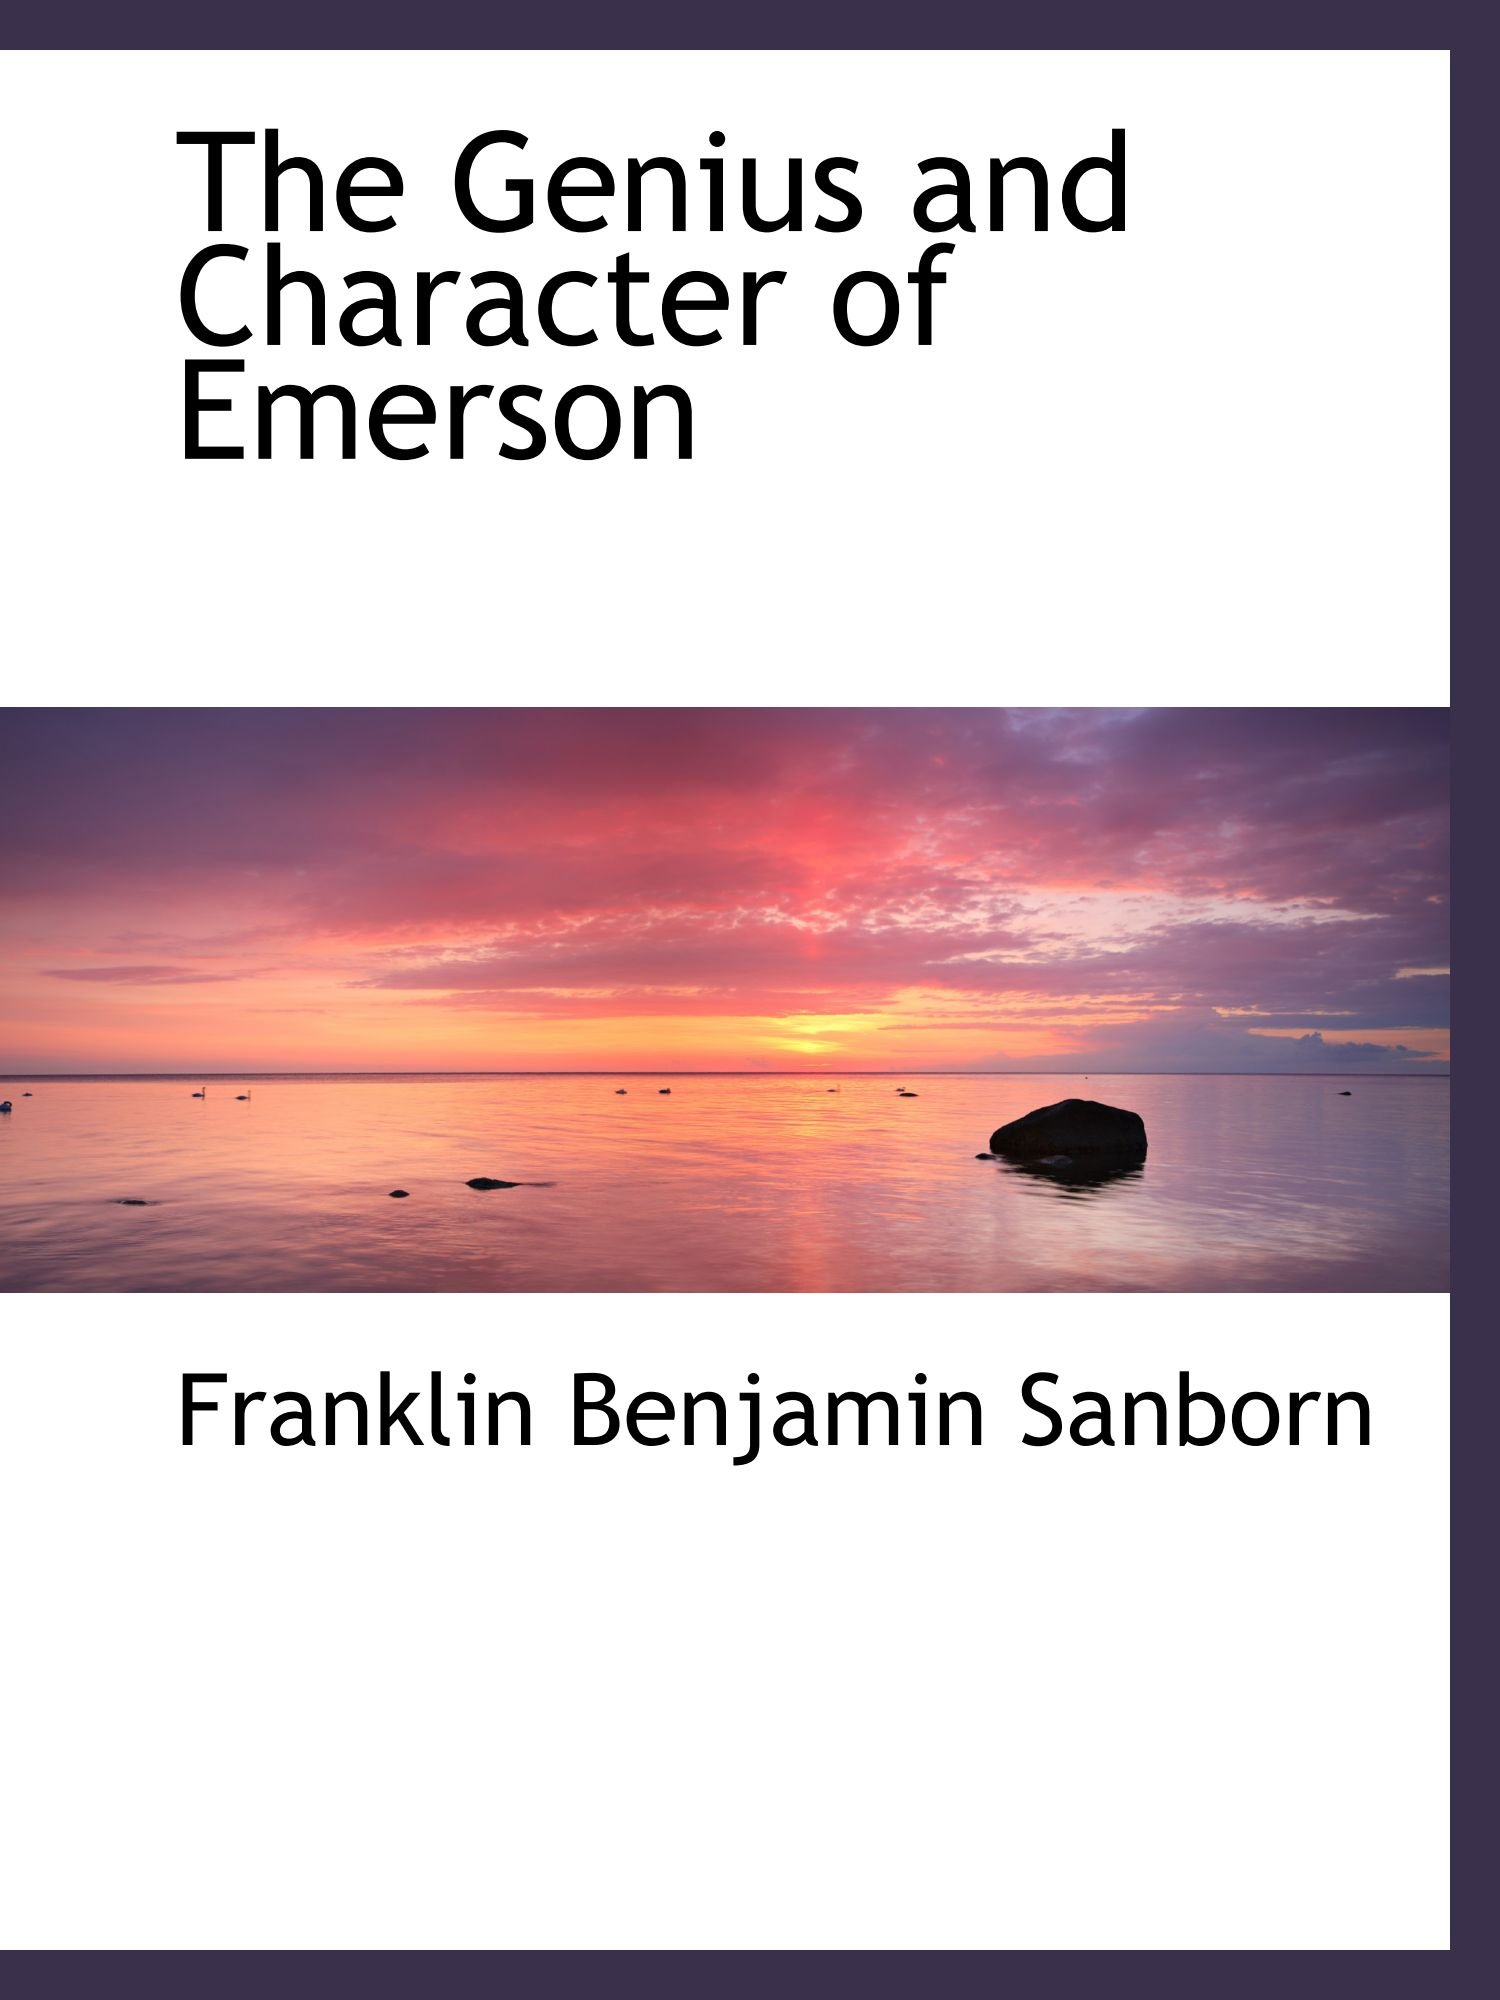 The Genius and Character of Emerson pdf